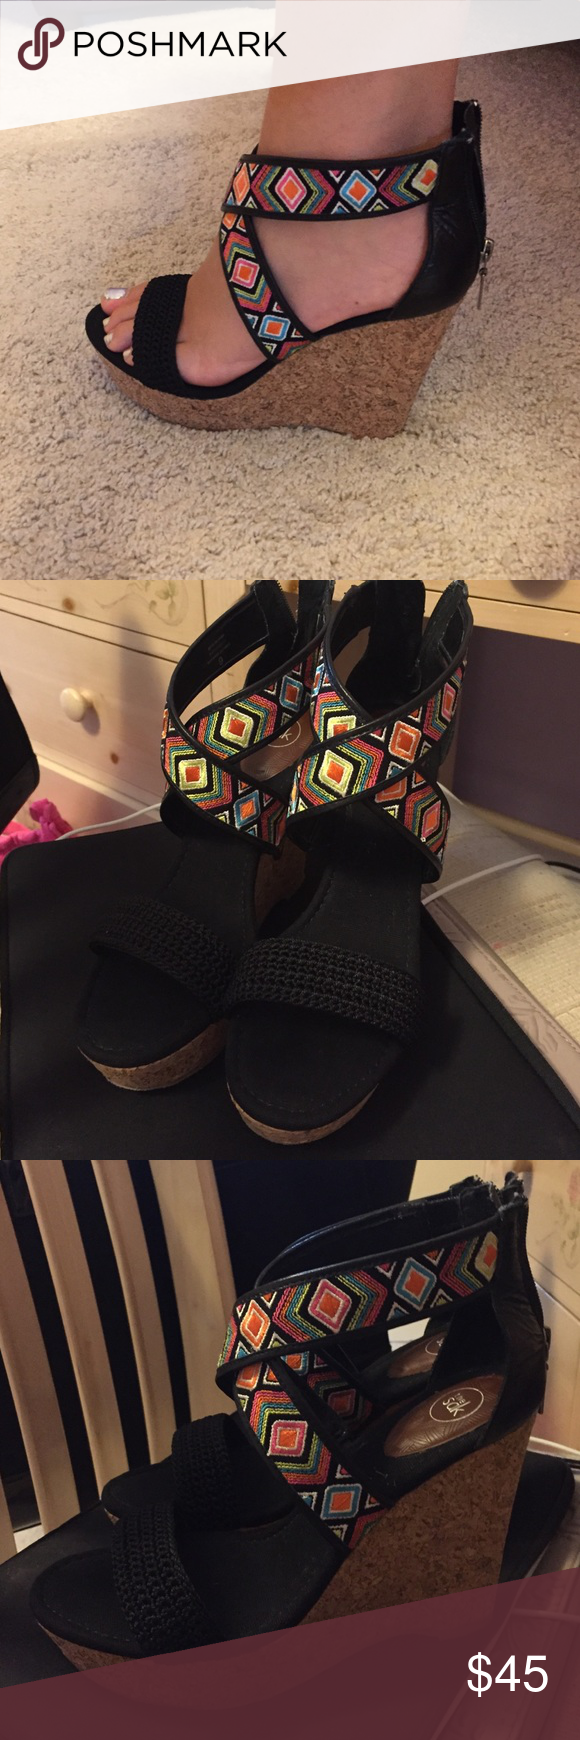 NWOT Wedges !! NWOT theSak wedges !! Size 9, with zipper behind the ankle and 4 inch cork heel The Sak Shoes Wedges